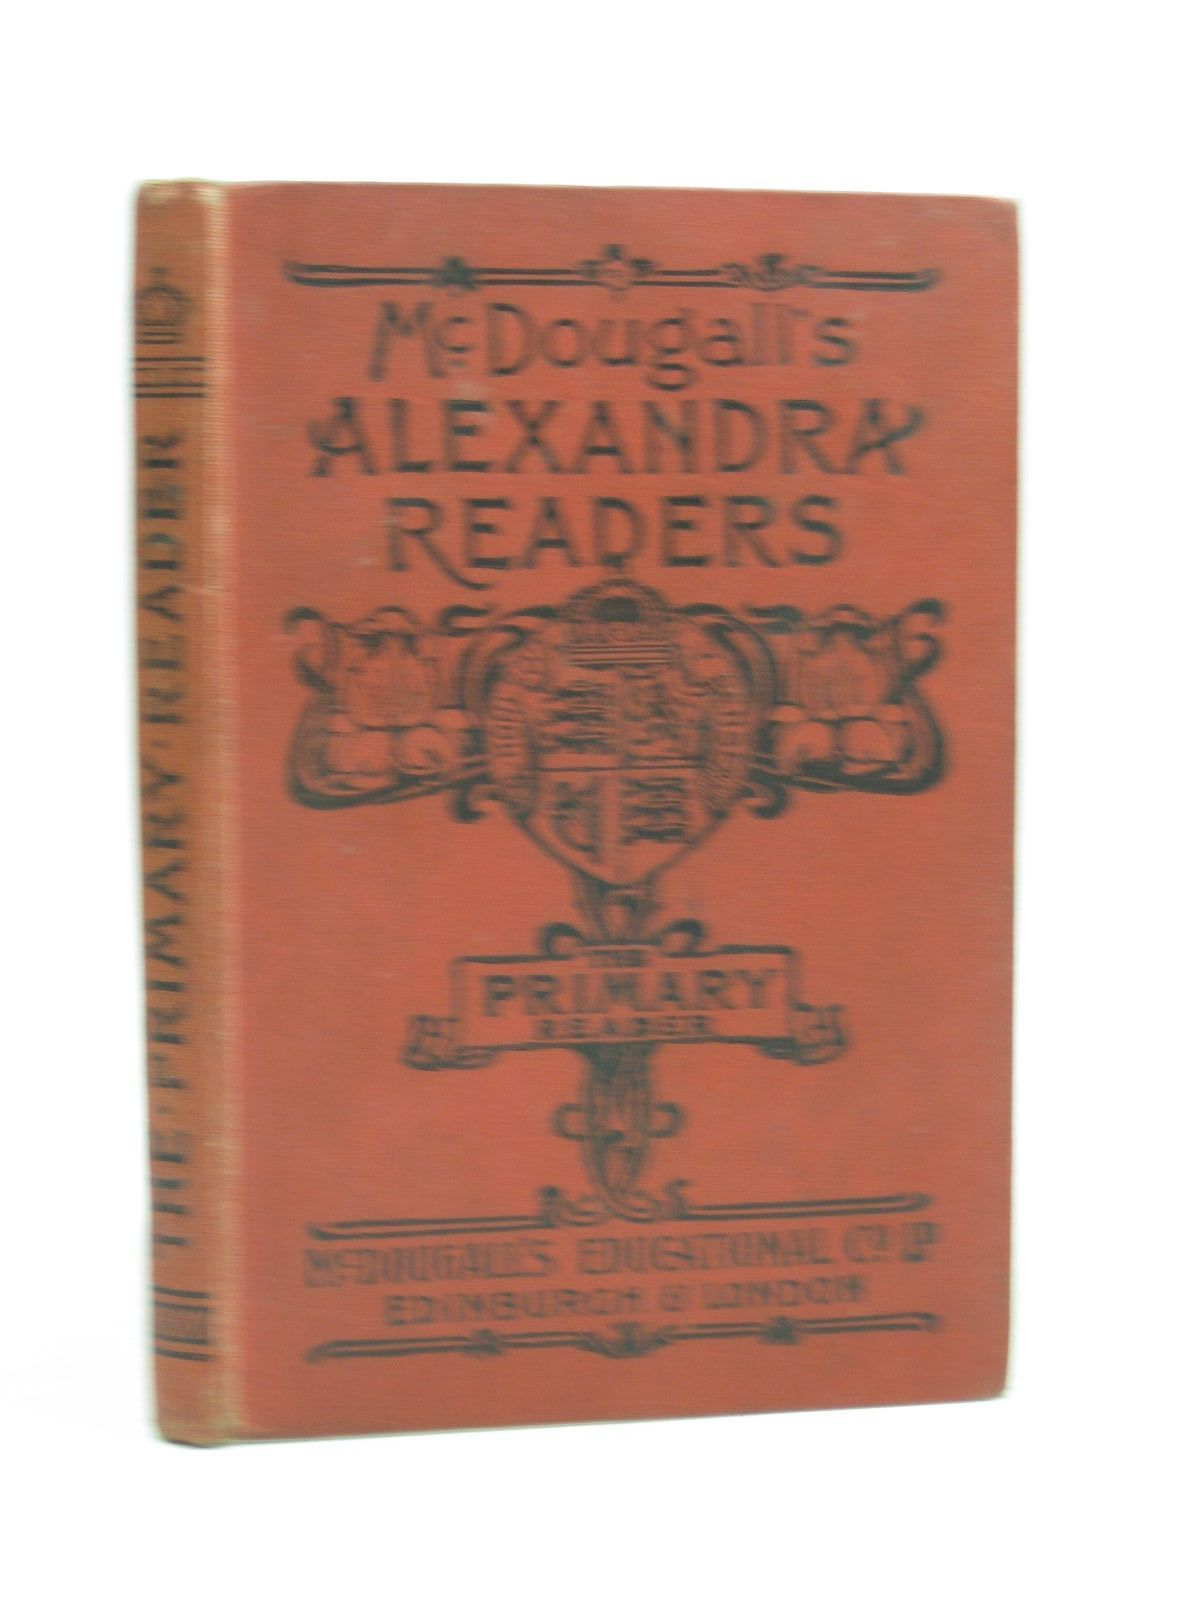 Photo of MCDOUGALL'S ALEXANDRA READERS - THE PRIMARY READER illustrated by Brown, Michael<br />et al., published by McDougall's Educational Co. Ltd. (STOCK CODE: 1314418)  for sale by Stella & Rose's Books